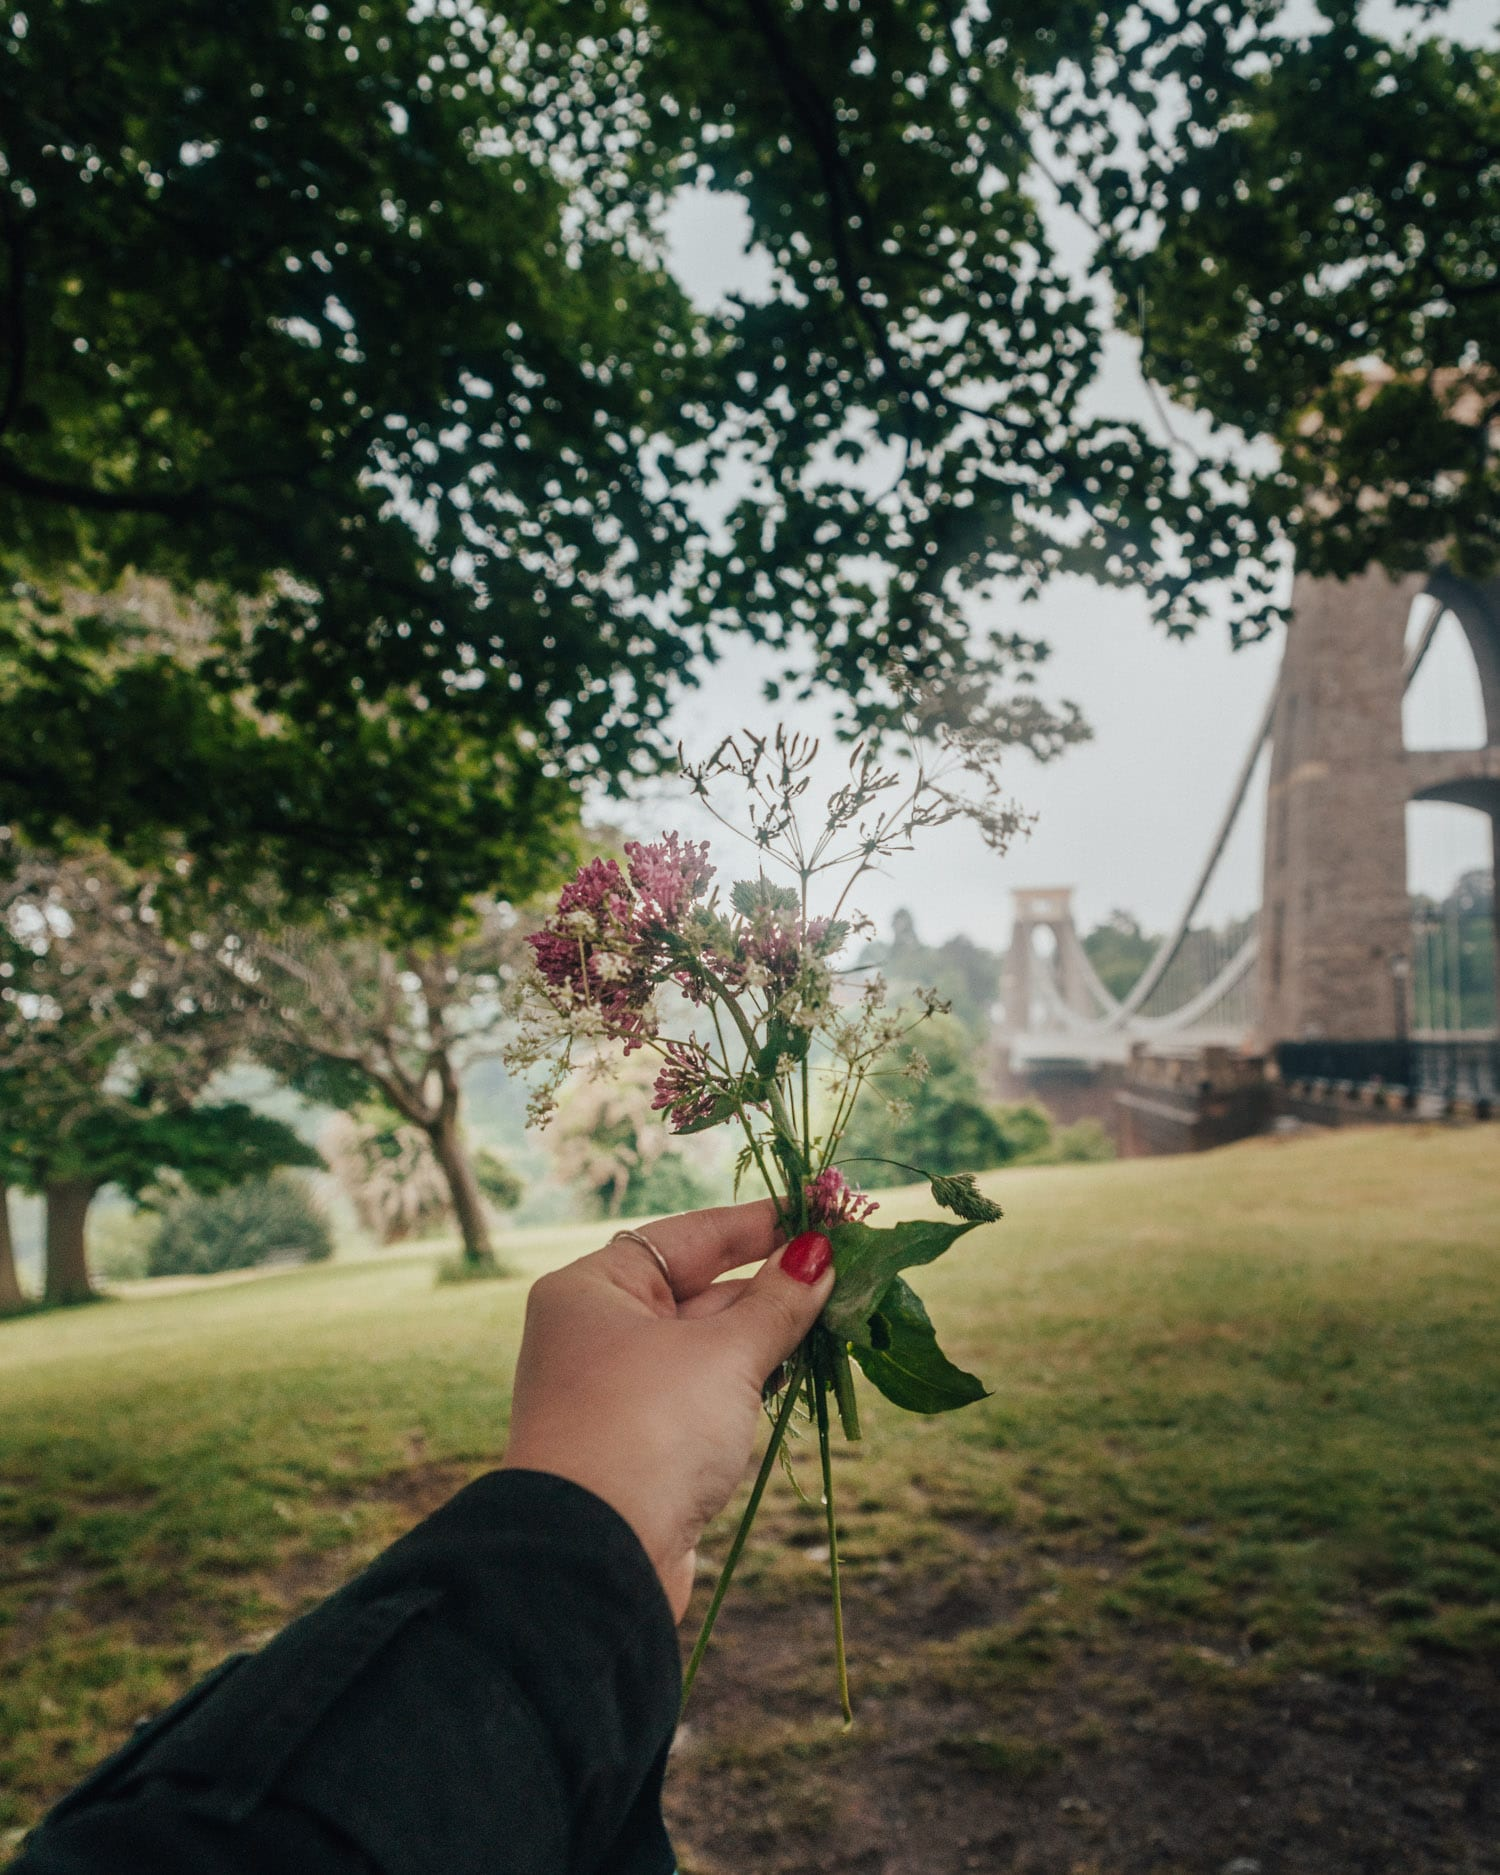 Clifton Suspension Bridge |Things to Do in Bath